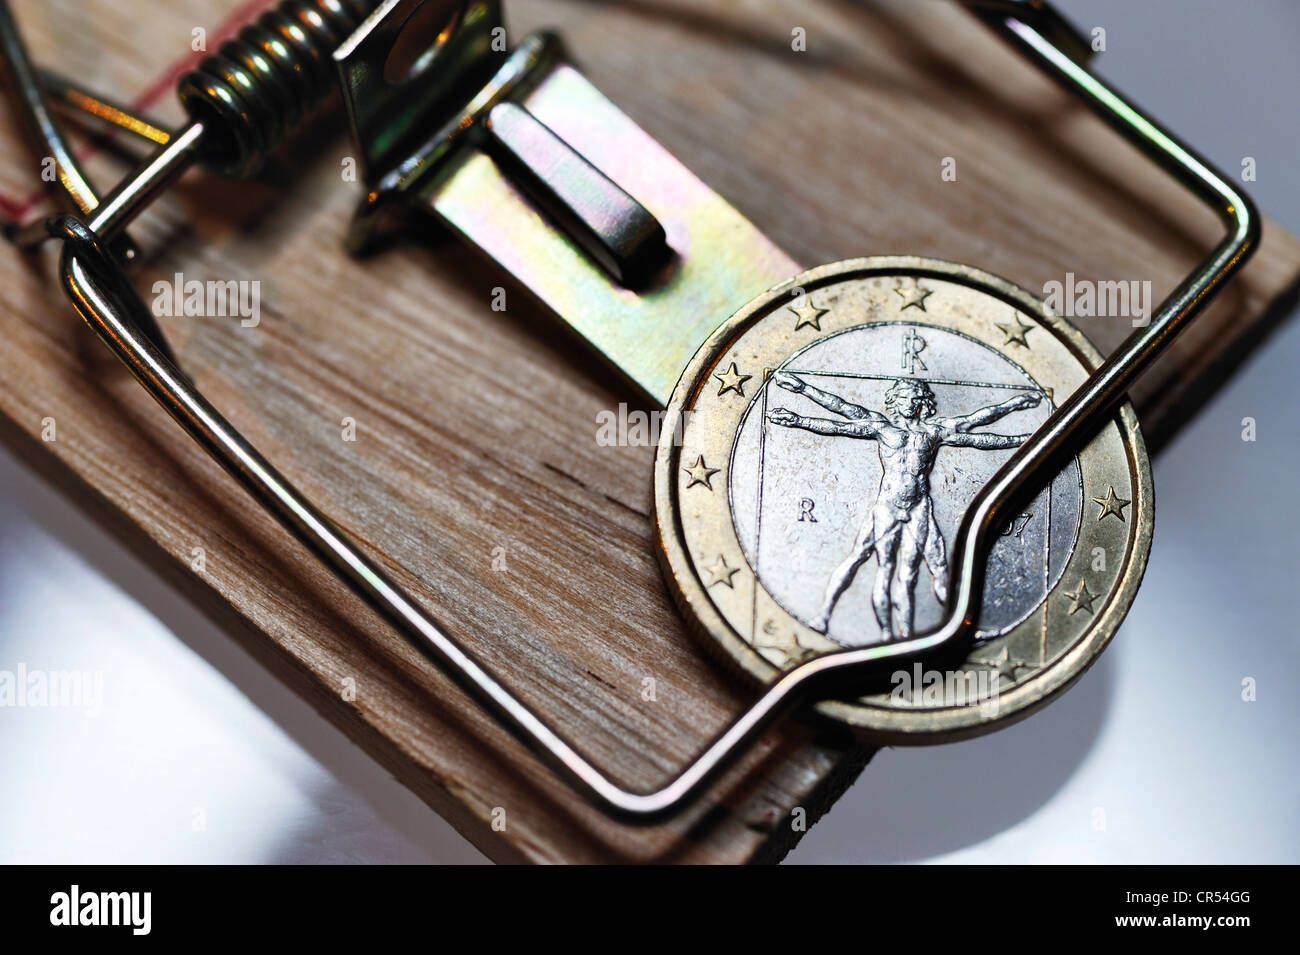 Italian one-euro coin into the debt trap, symbolic image - Stock Image